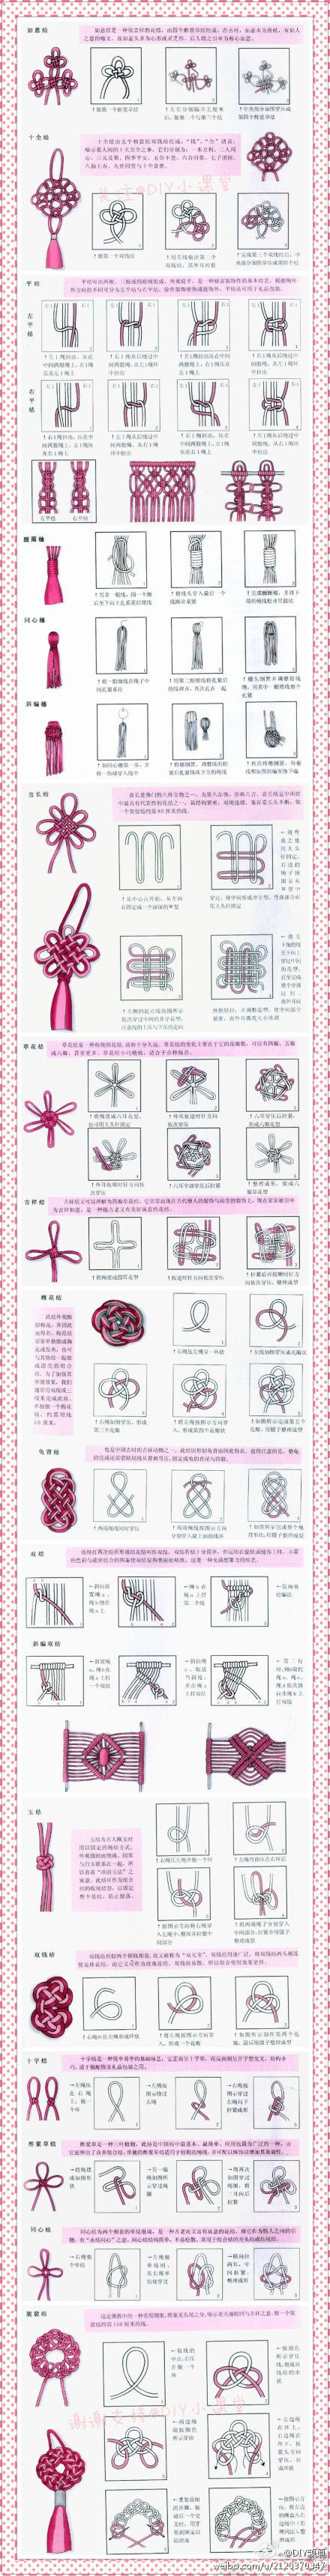 Chinese knots, i. e. frogs for closure. All in diagram format which is good because the directions appear to be in Chinese.